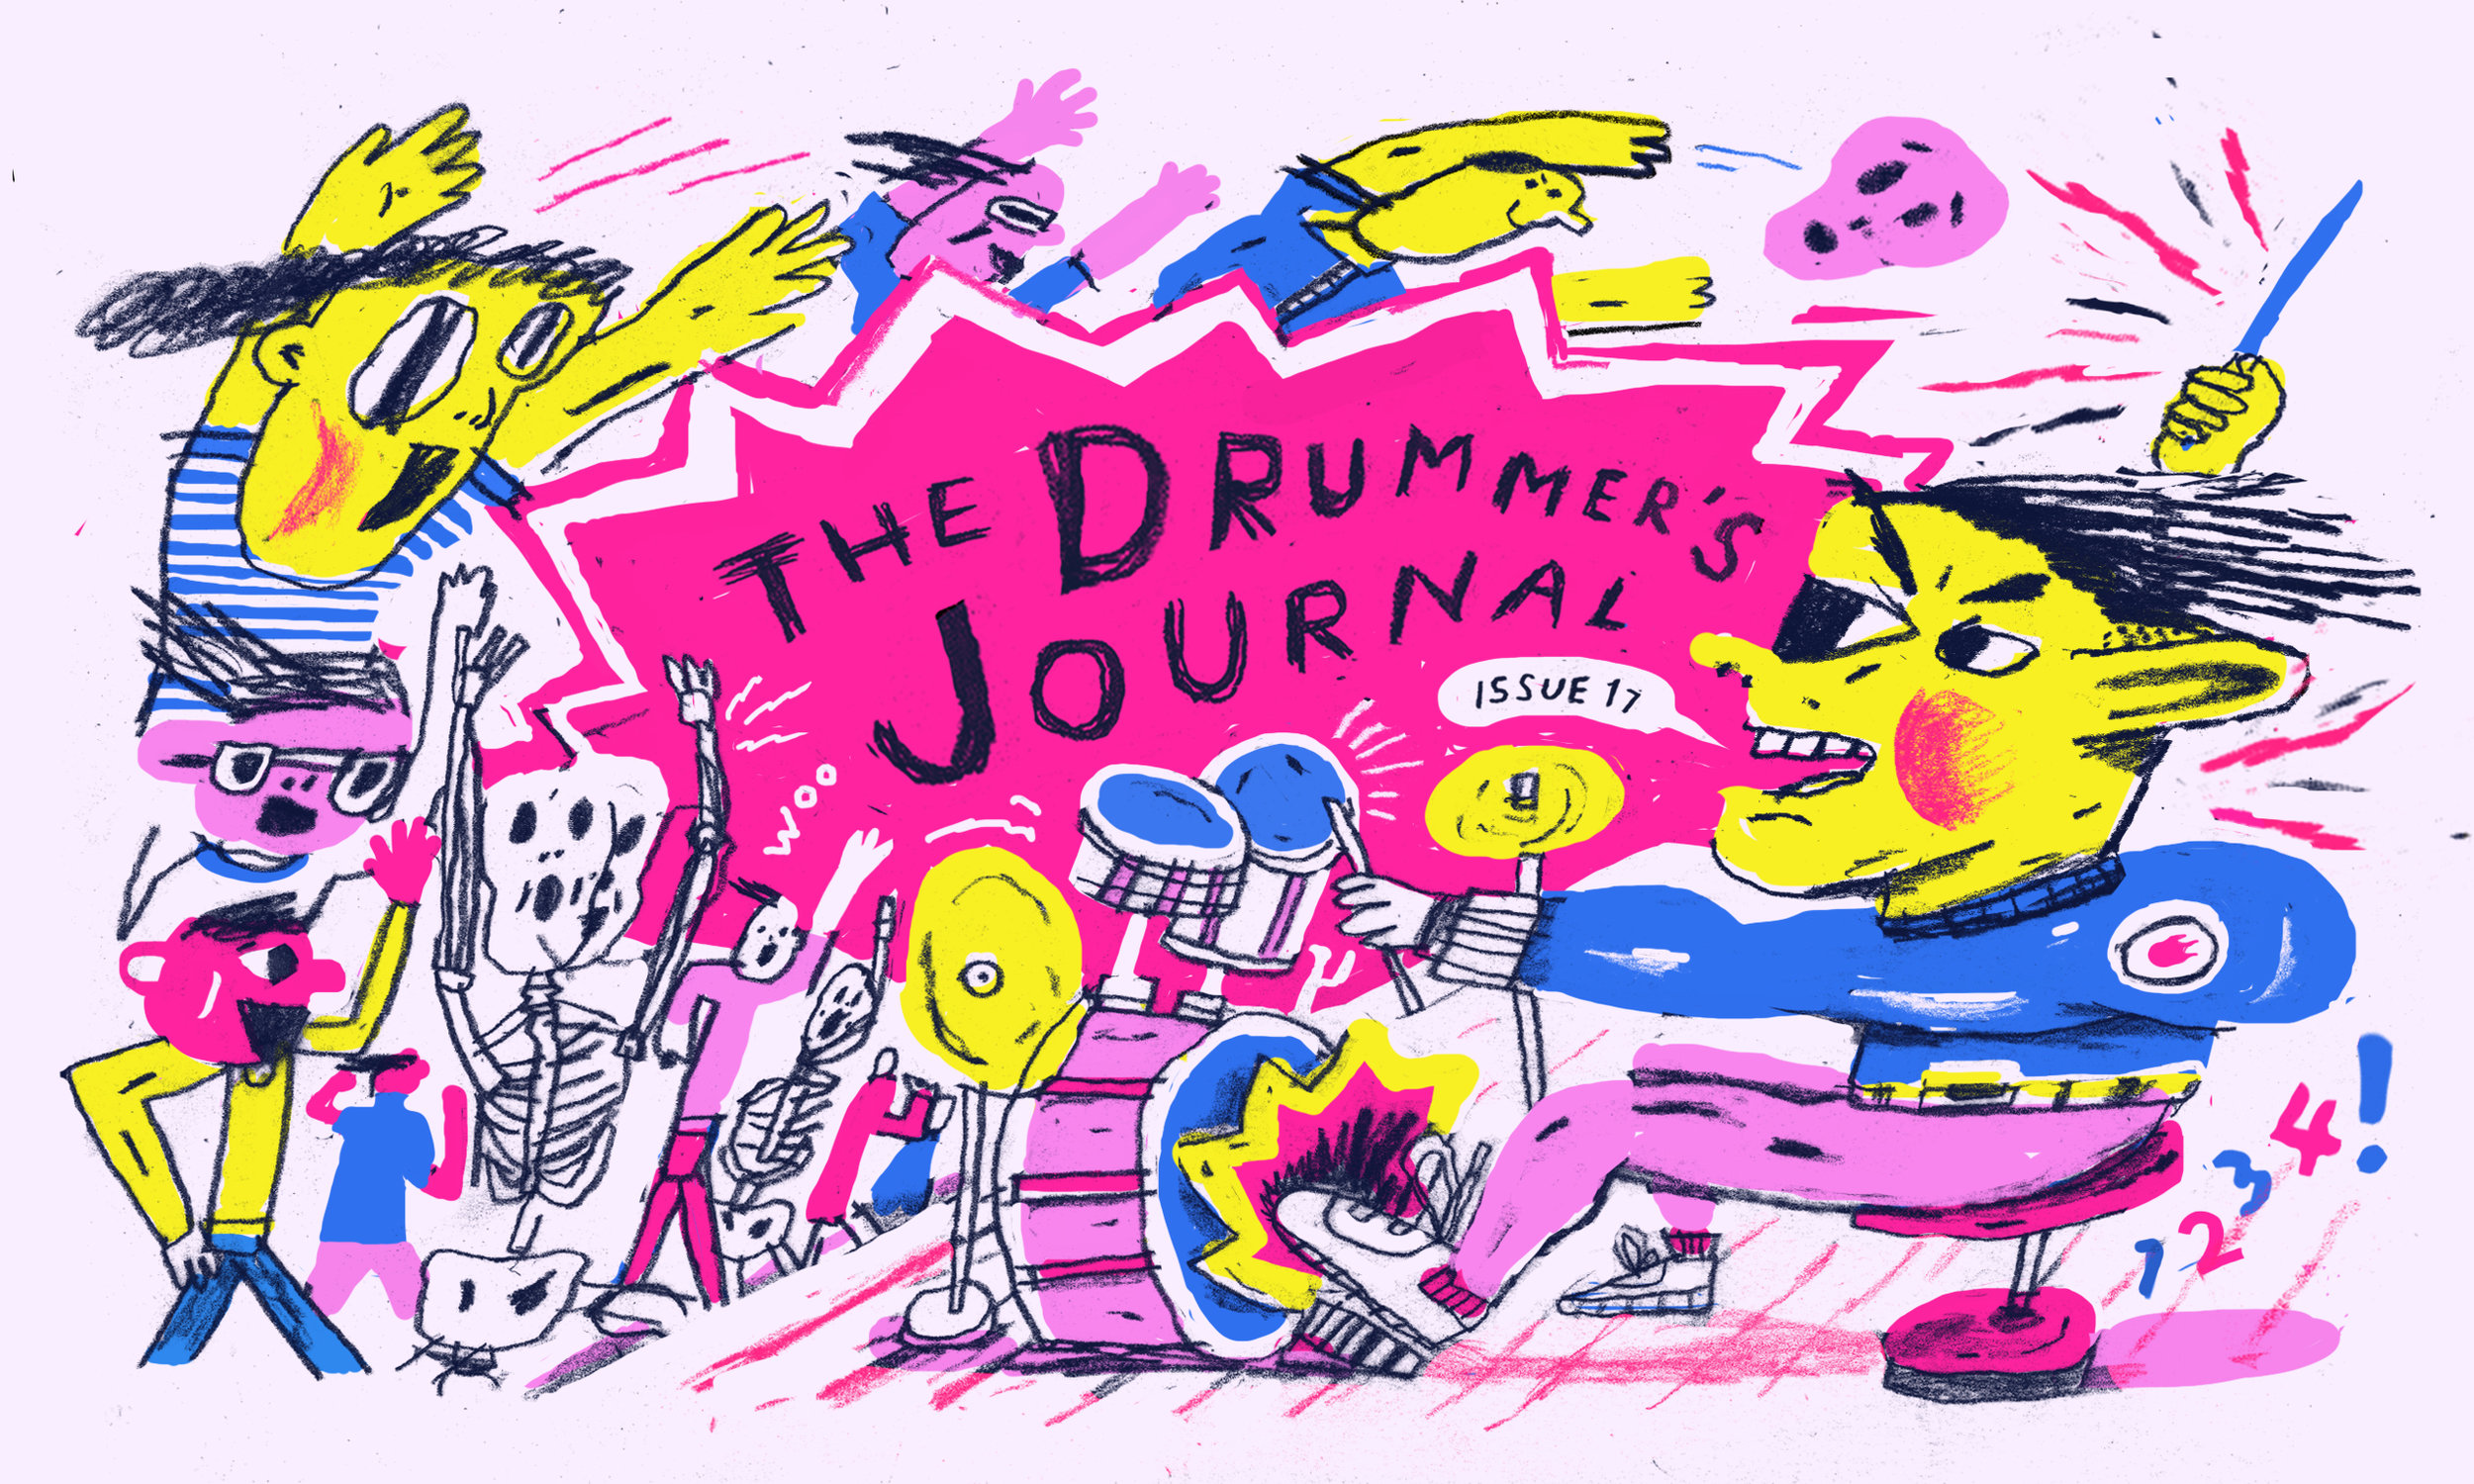 Cover for The Drummer's Journal